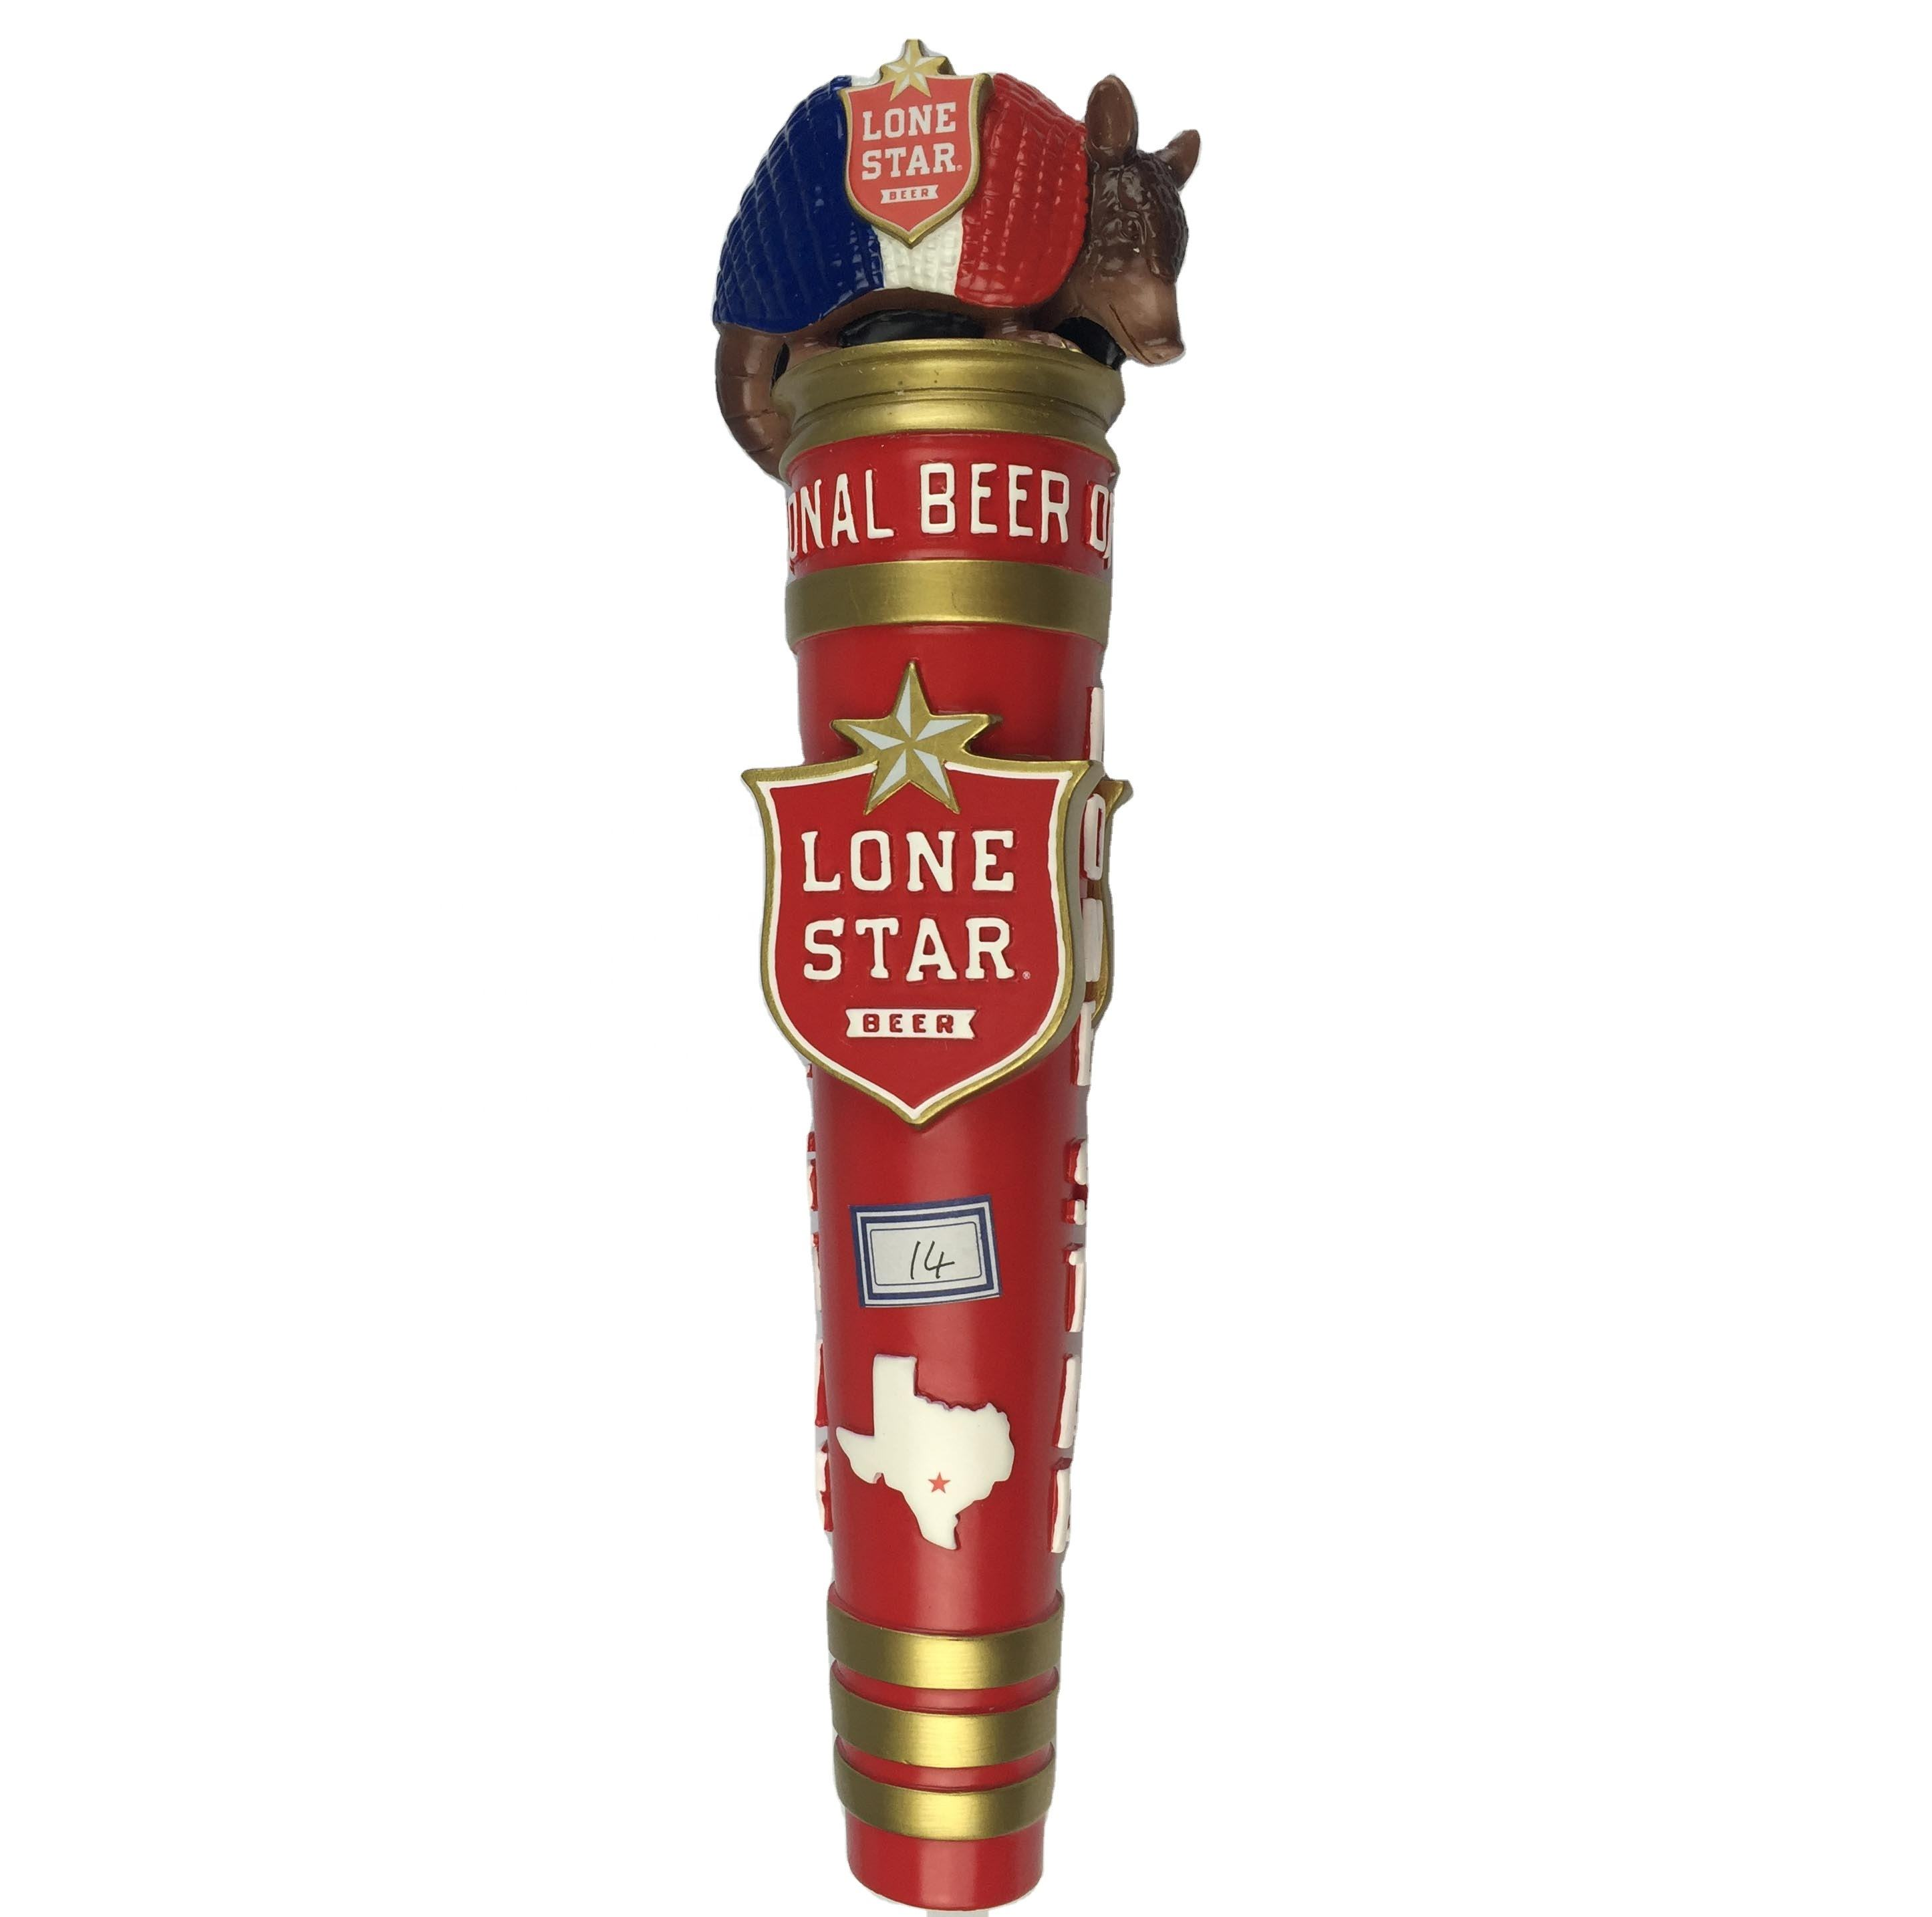 Lone Star Tippen griffe